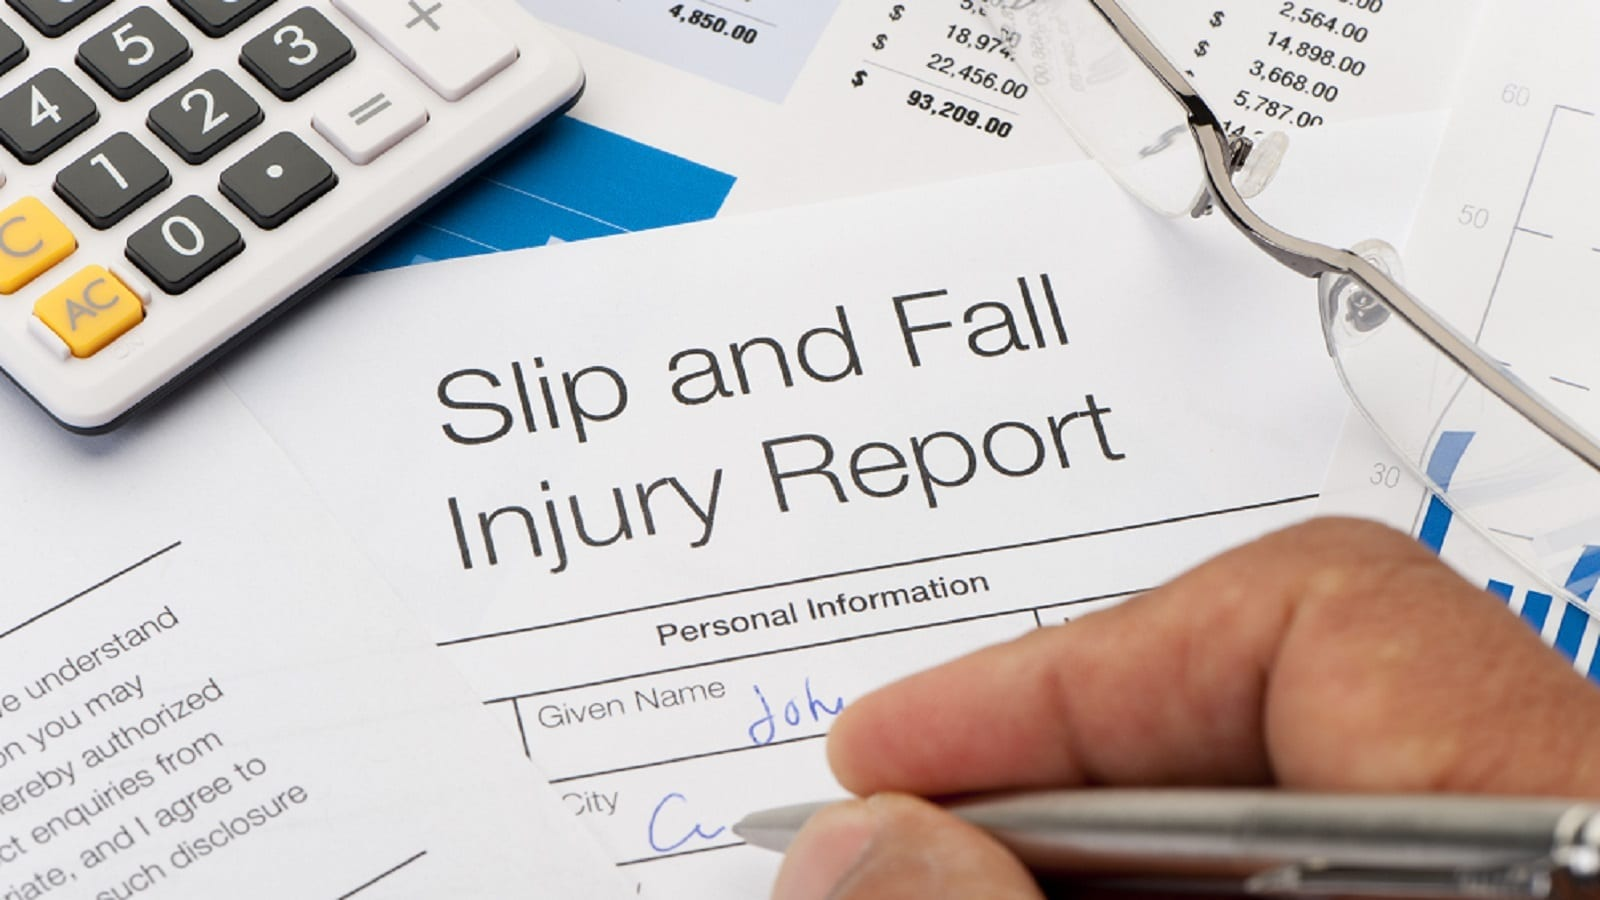 Slip and Fall Injury Report Stock Photo